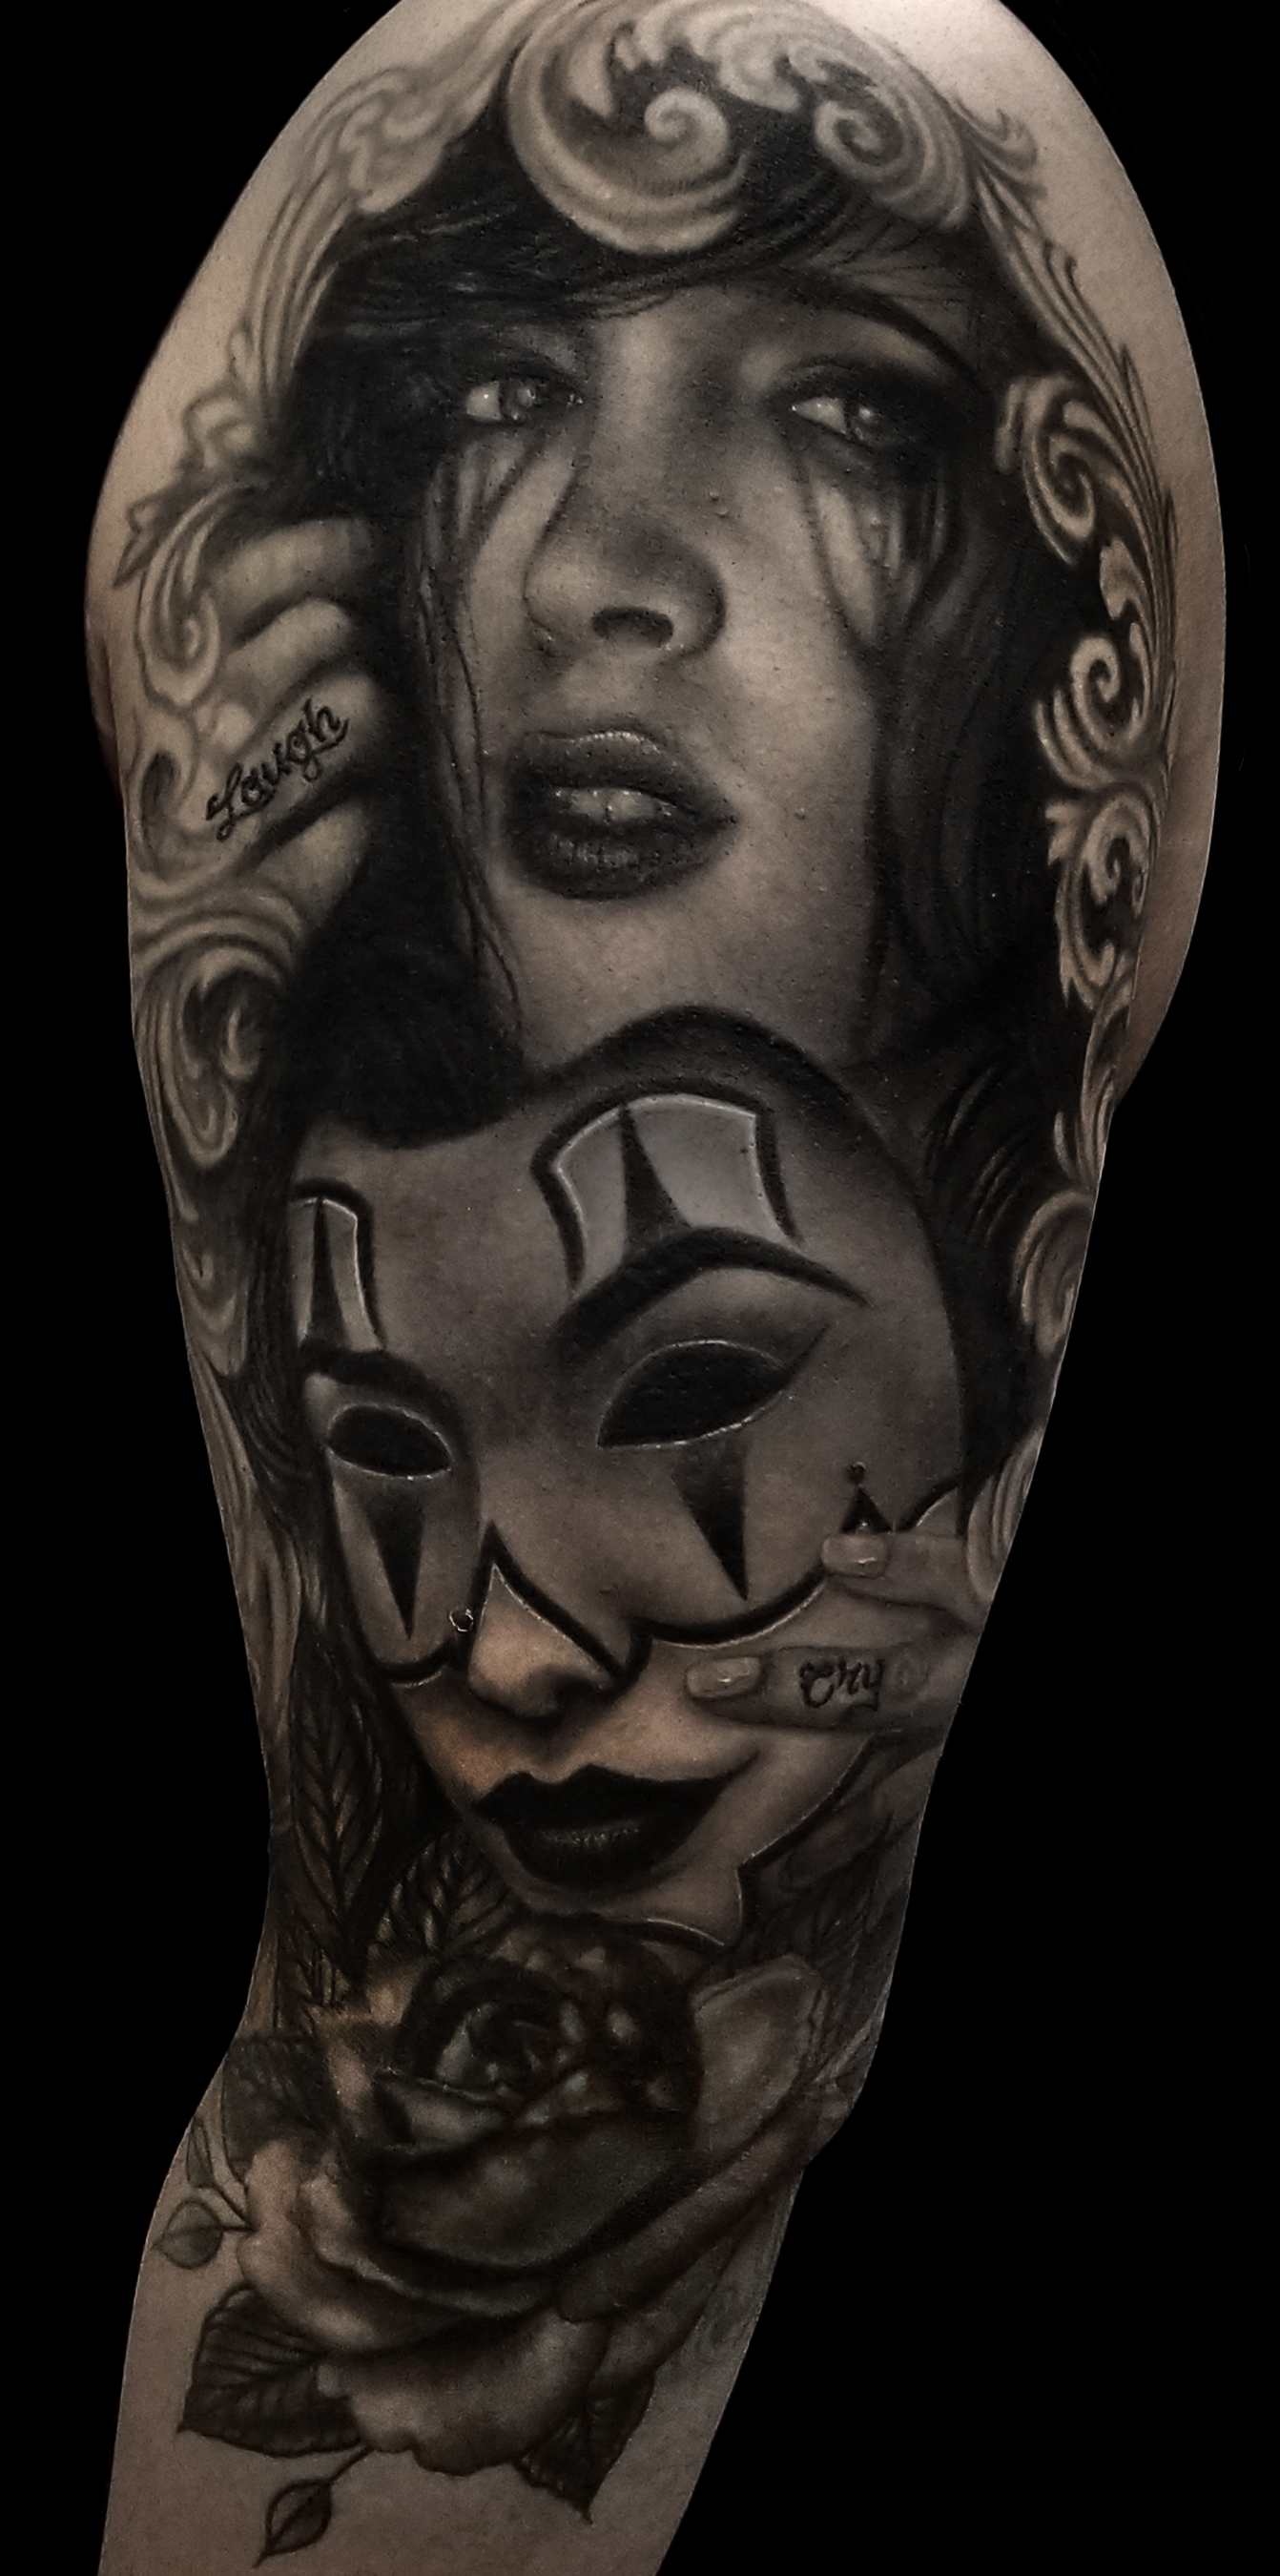 LCT Black & Gray Realism Portrait Laugh Now Cry Later Girl Rose  Tattoo.jpg